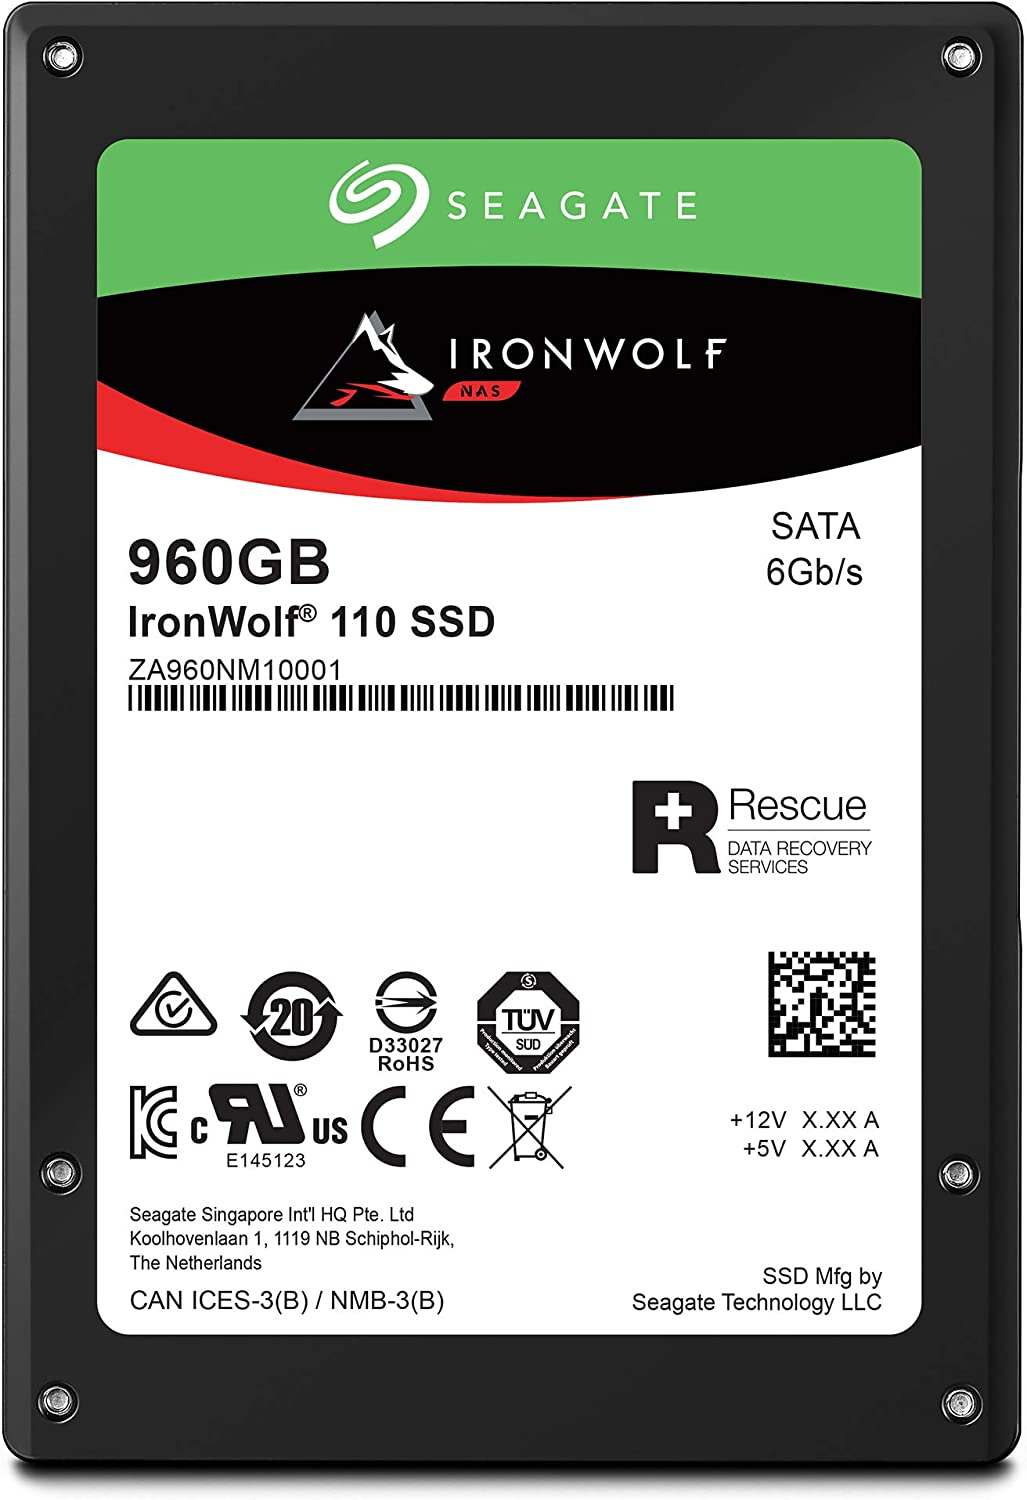 Seagate IronWolf 110 980GB NAS SSD Internal Solid State Drive – 2.5 inch SATA for Multibay RAID System Network Attached Storage, 2 Year Data Recovery (ZA960NM10001)